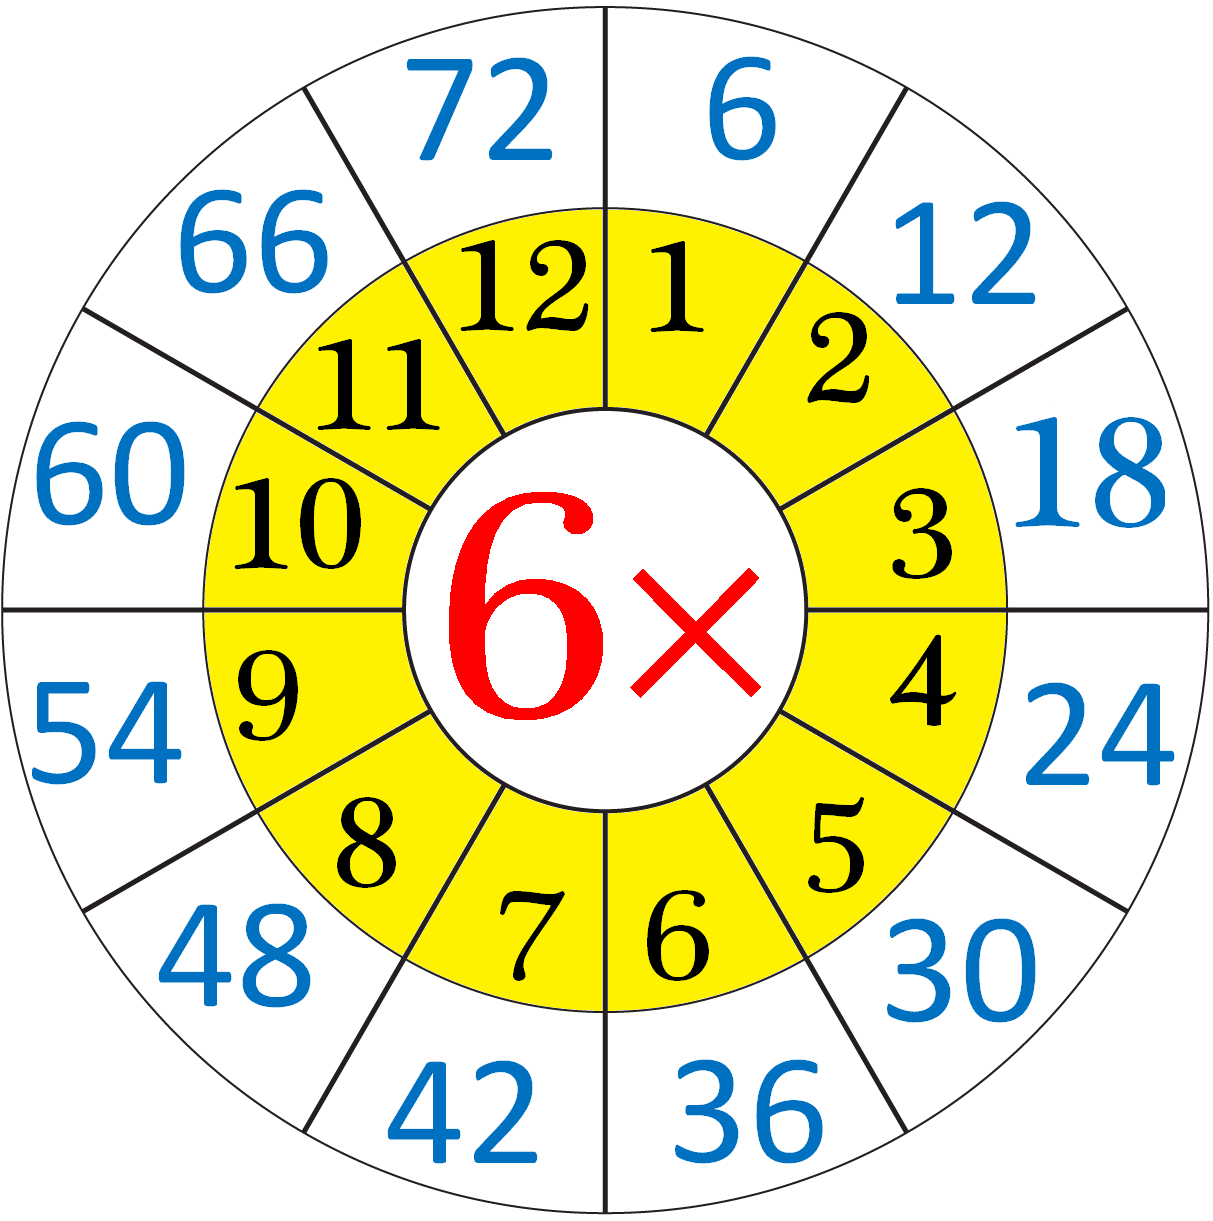 Repeated Addition By 6 S Means The Multiplication Table Of 6 I When 6 Bunches Each Having Six